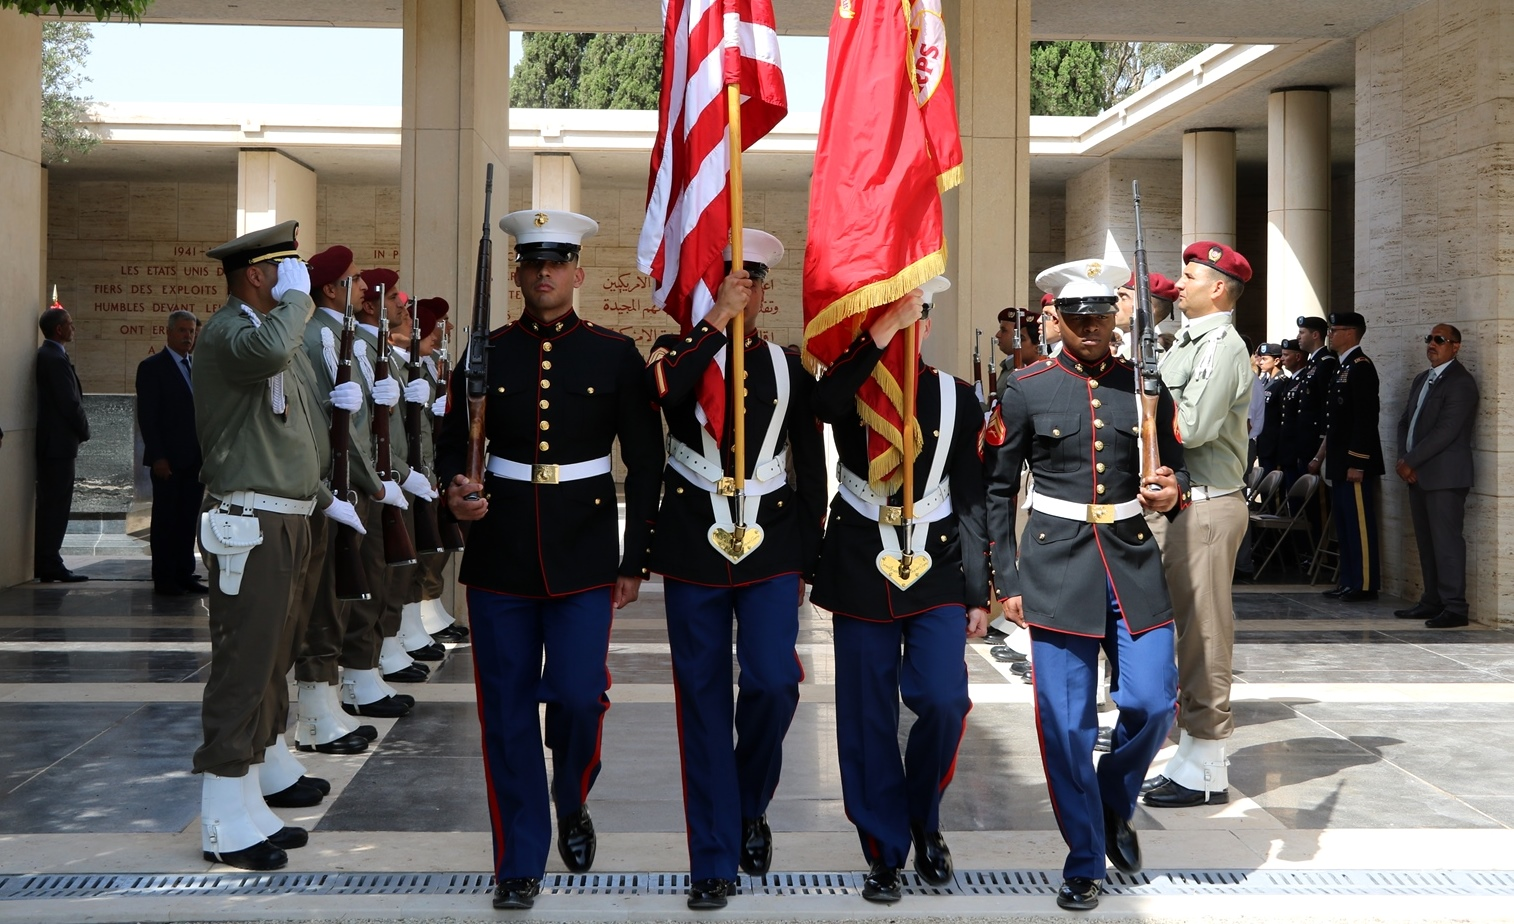 A U.S. Marine Corps honor guard passes in formation as part of the Memorial Day ceremony in Carthage, Tunisia, May 28, 2018. (Photo by Zouhaier SFAXI, U.S. Embassy Tunis)